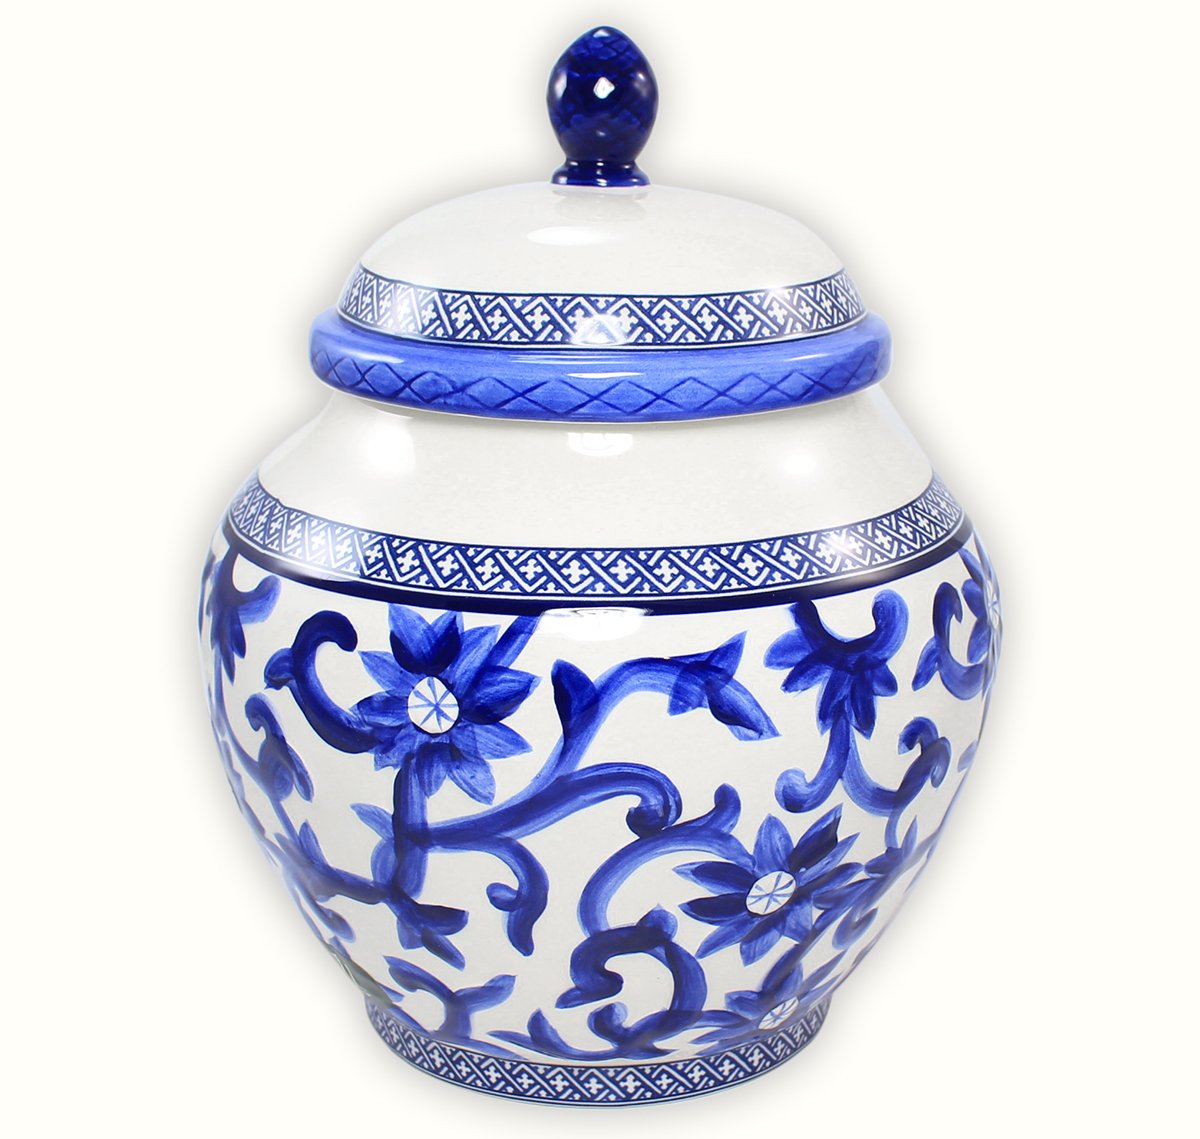 Ralph Lauren Mandarin Blue Porcelain Medium Ginger Jar Canister (9-in) by RALPH LAUREN